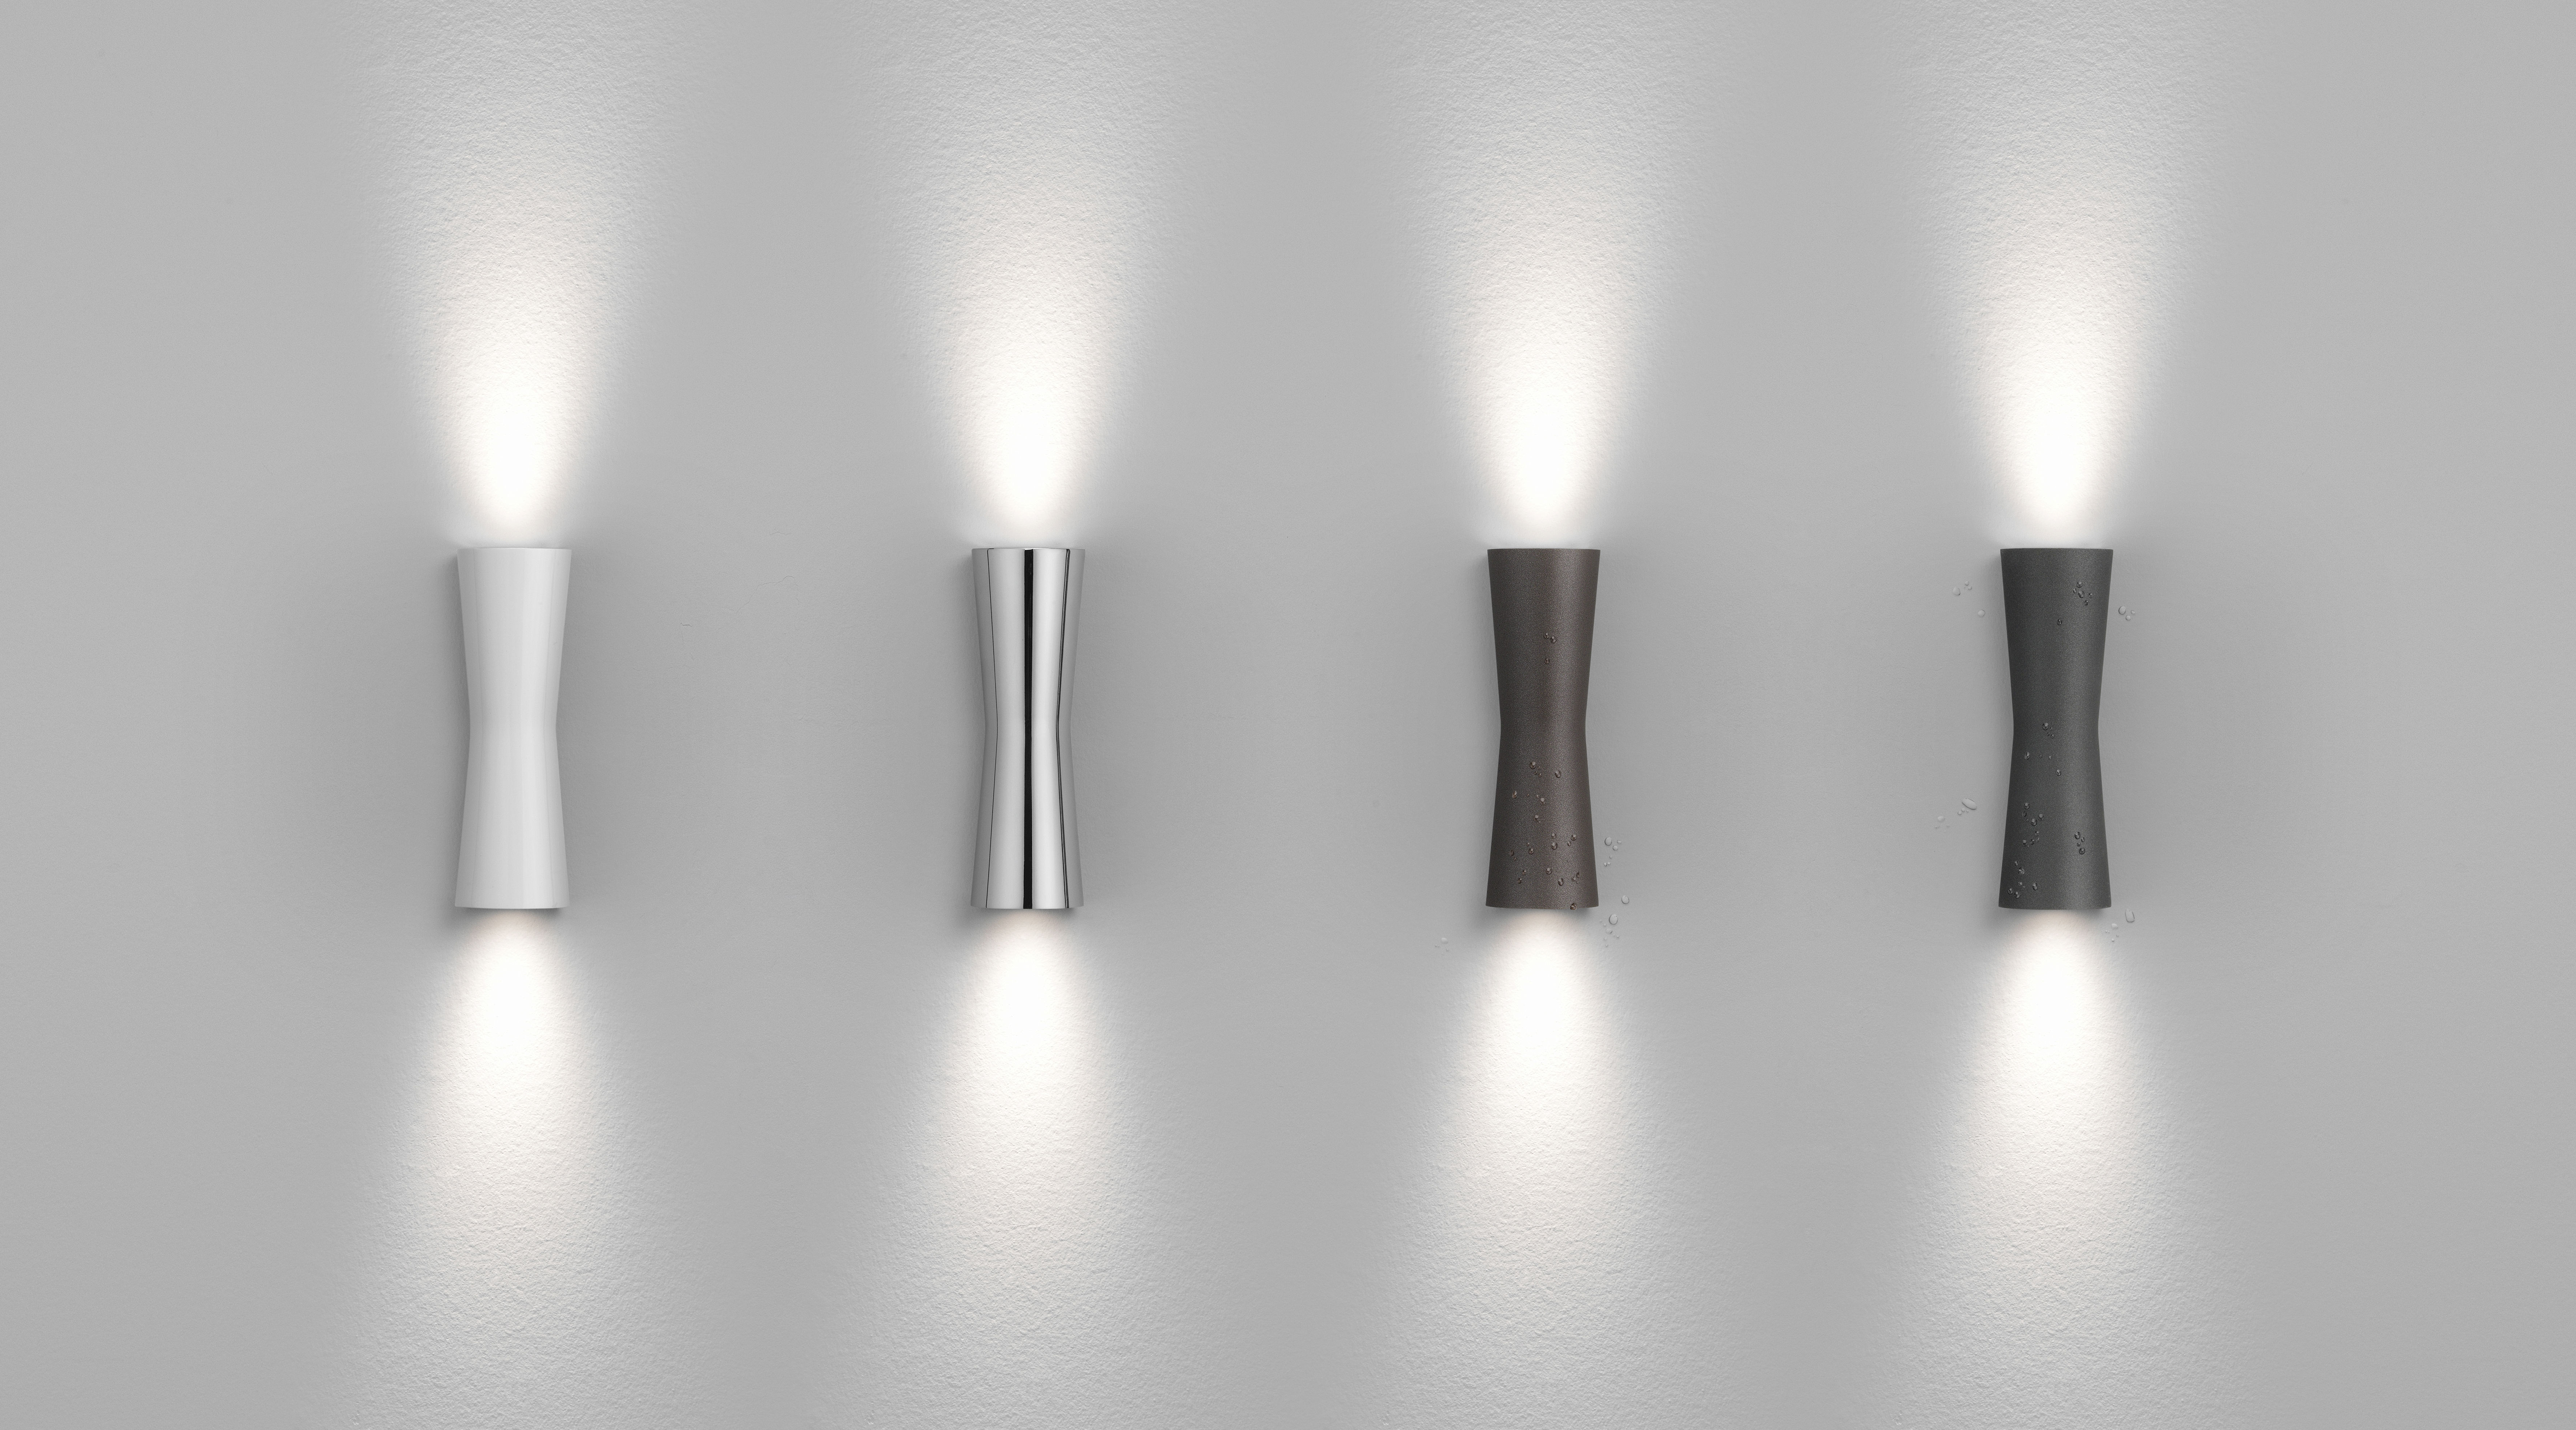 Clessidra ° applique led interno cromato by flos made in